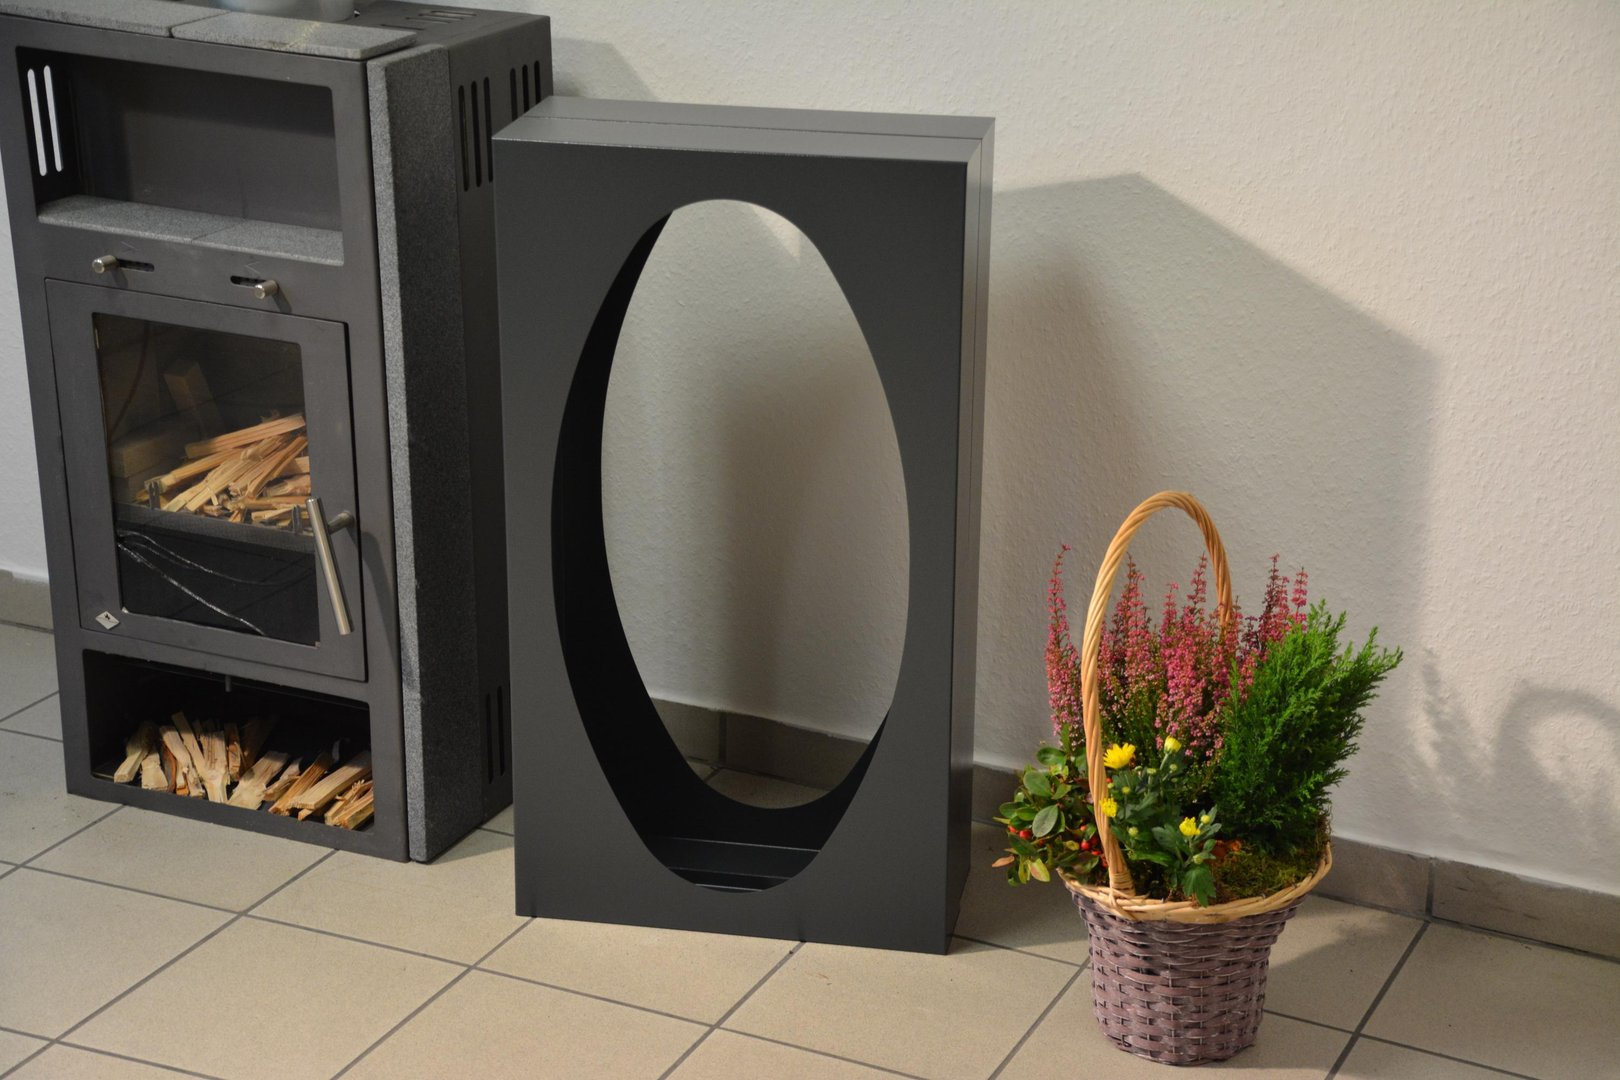 Kamin Regal Metall Kaminholzregal Metall Oval Innenbereich Regal Aus Metall